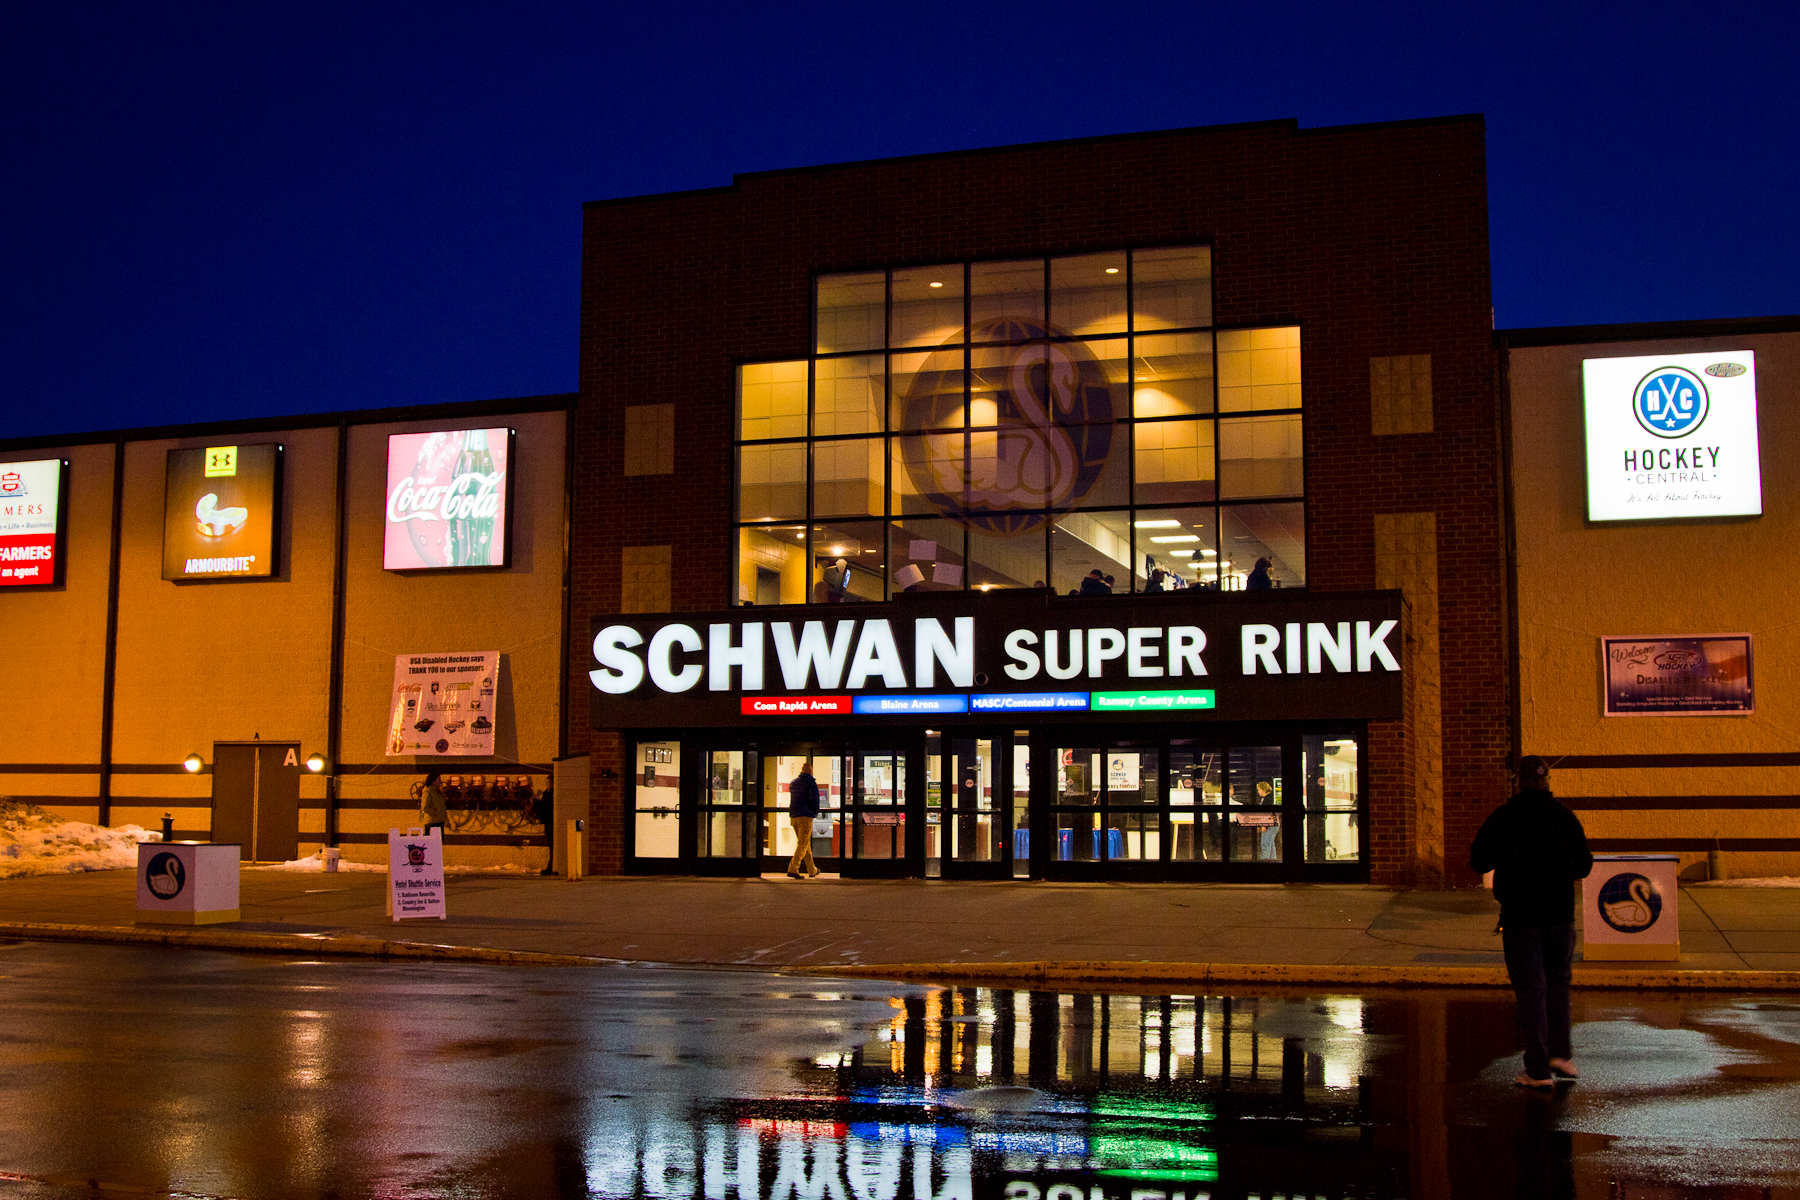 Schwan super rink wikiwand for Garage doors blaine mn